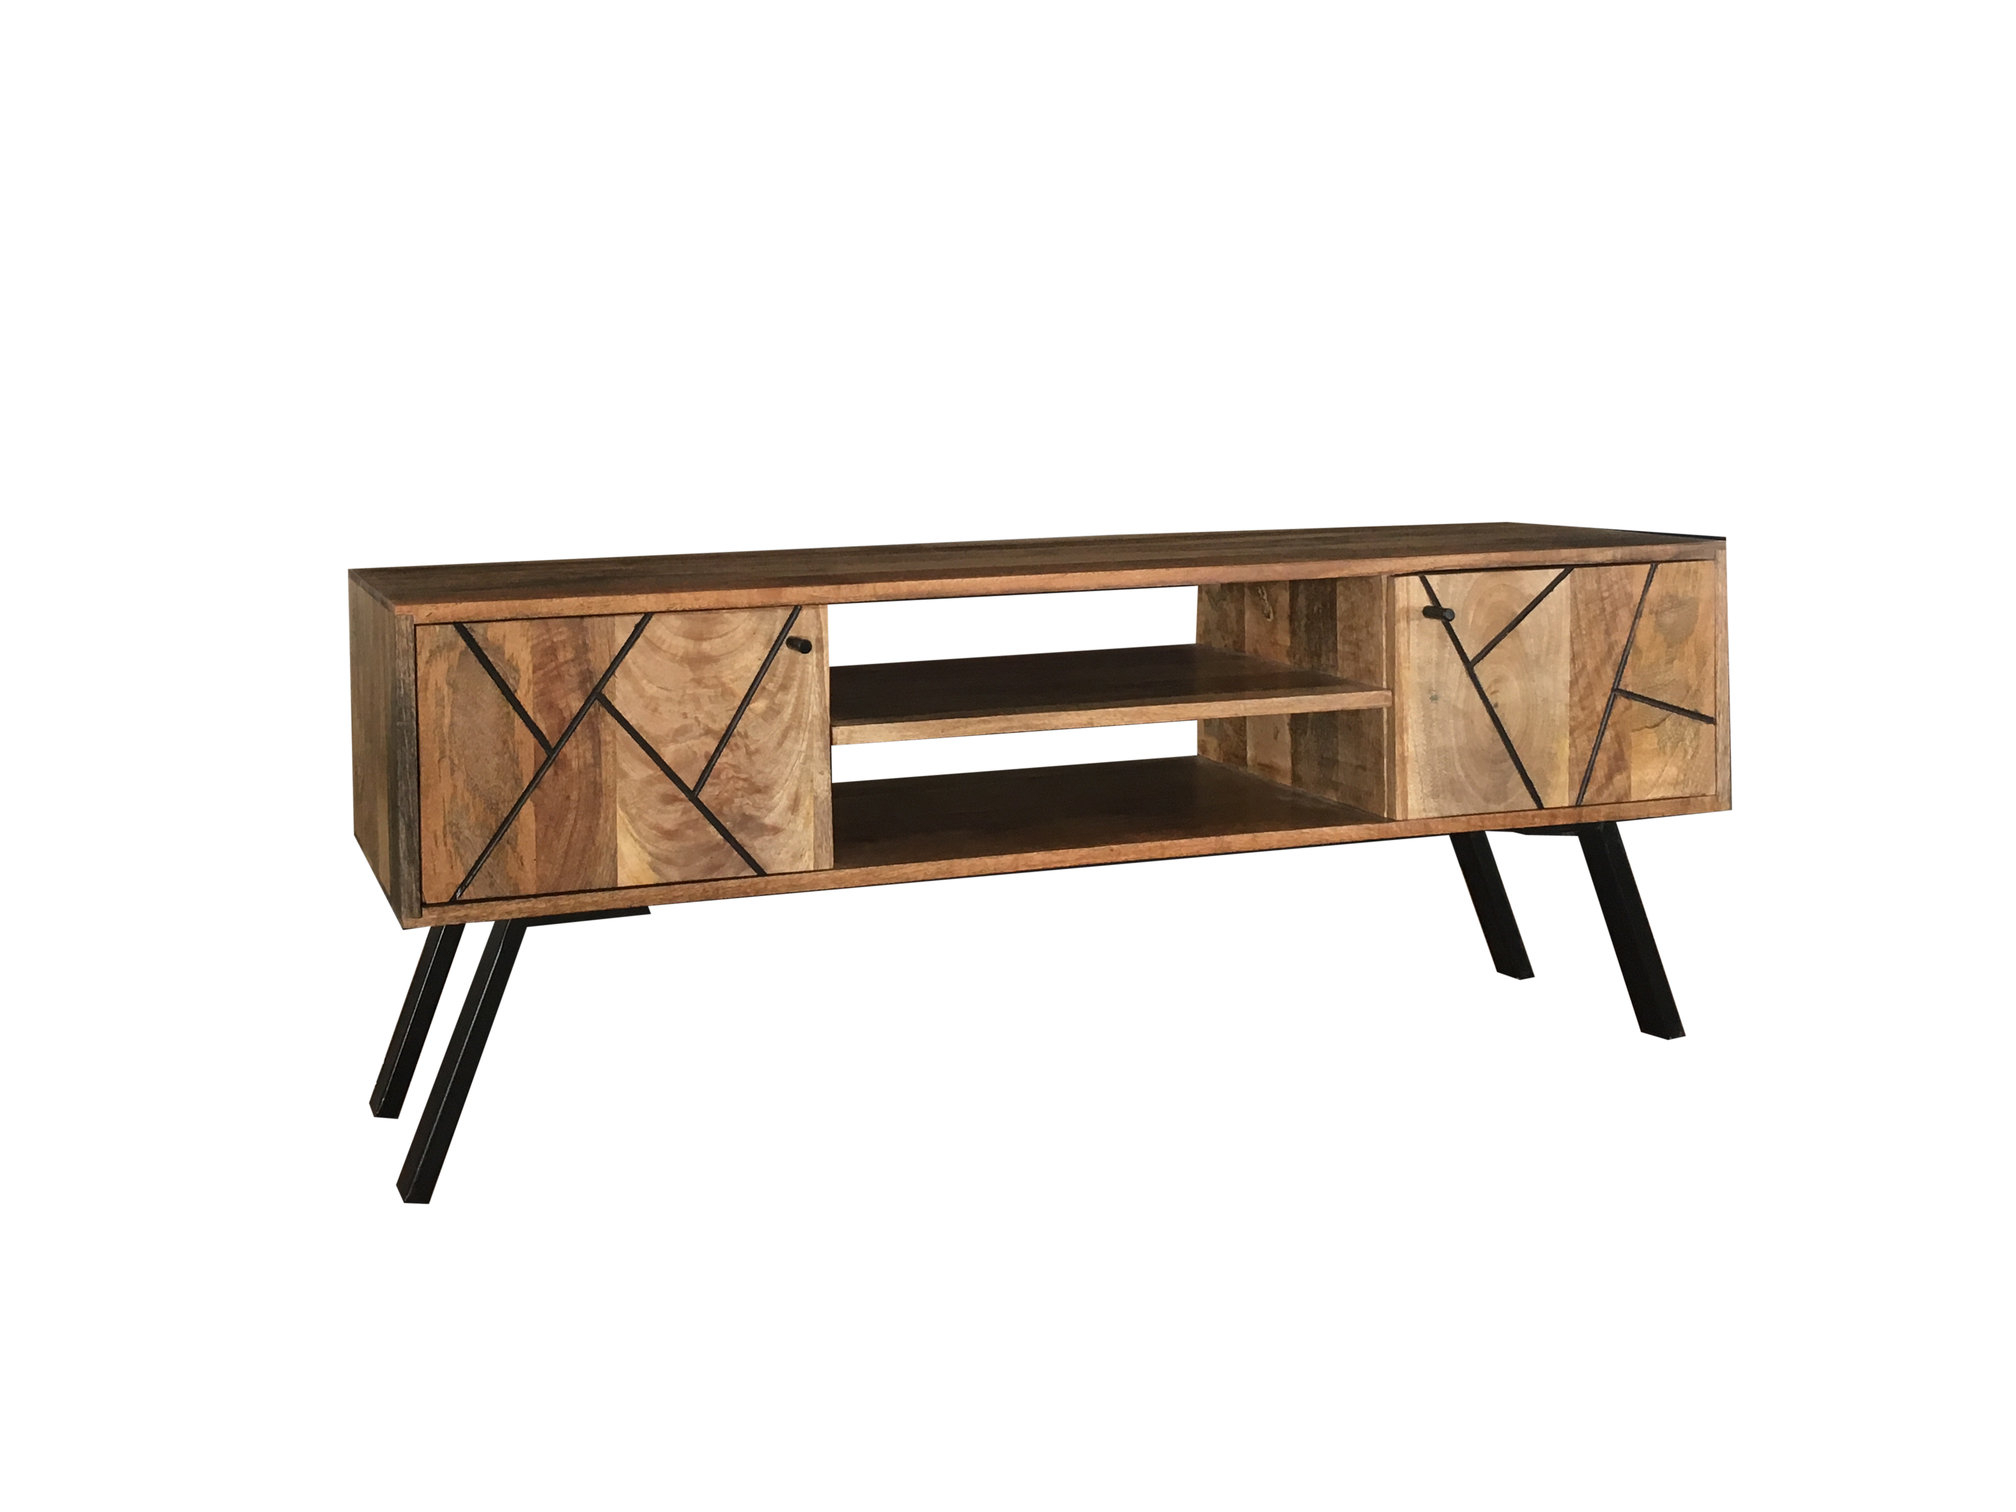 Famous Urban Retro Range Industrail Style 2 Door Media Unit / Tv Stand Pertaining To Industrial Style Tv Stands (View 9 of 20)